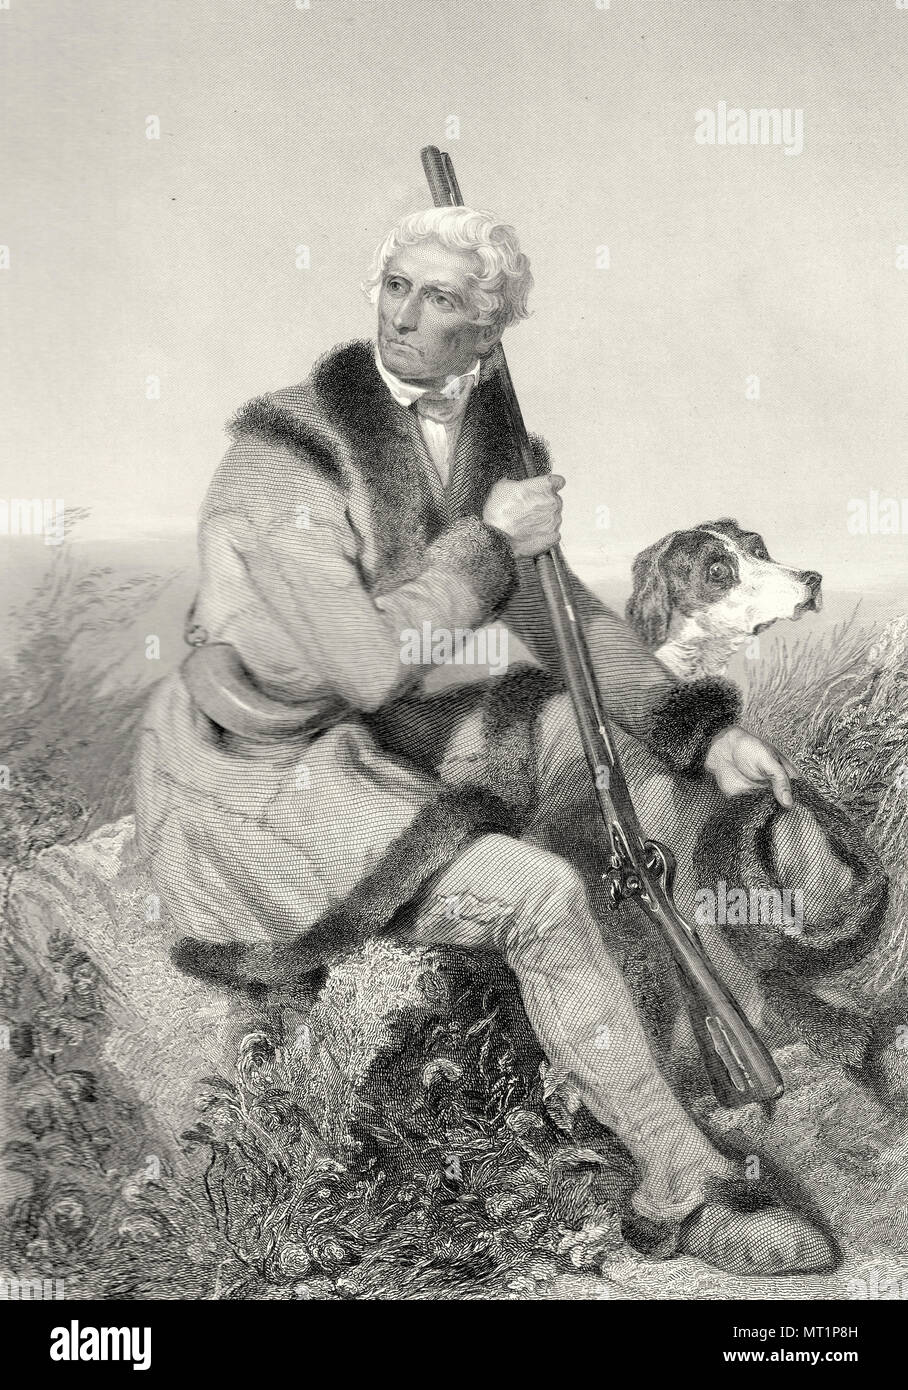 Daniel Boone (1734 – 1820) American pioneer, explorer, woodsman, and frontiersman, one of the first folk heroes of the United States. - Stock Image